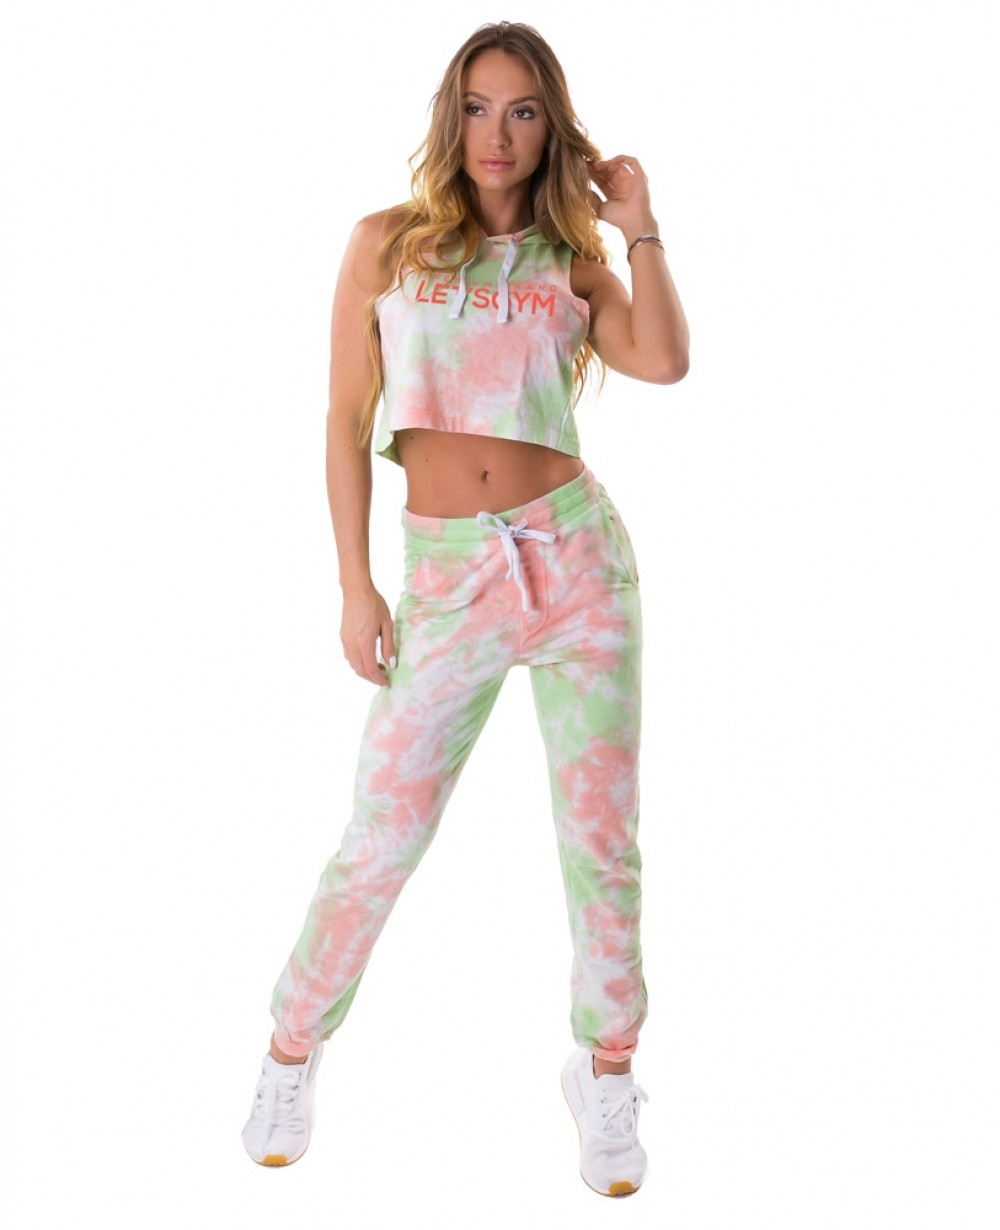 Jogger Let'sGym Duo Tie Dye